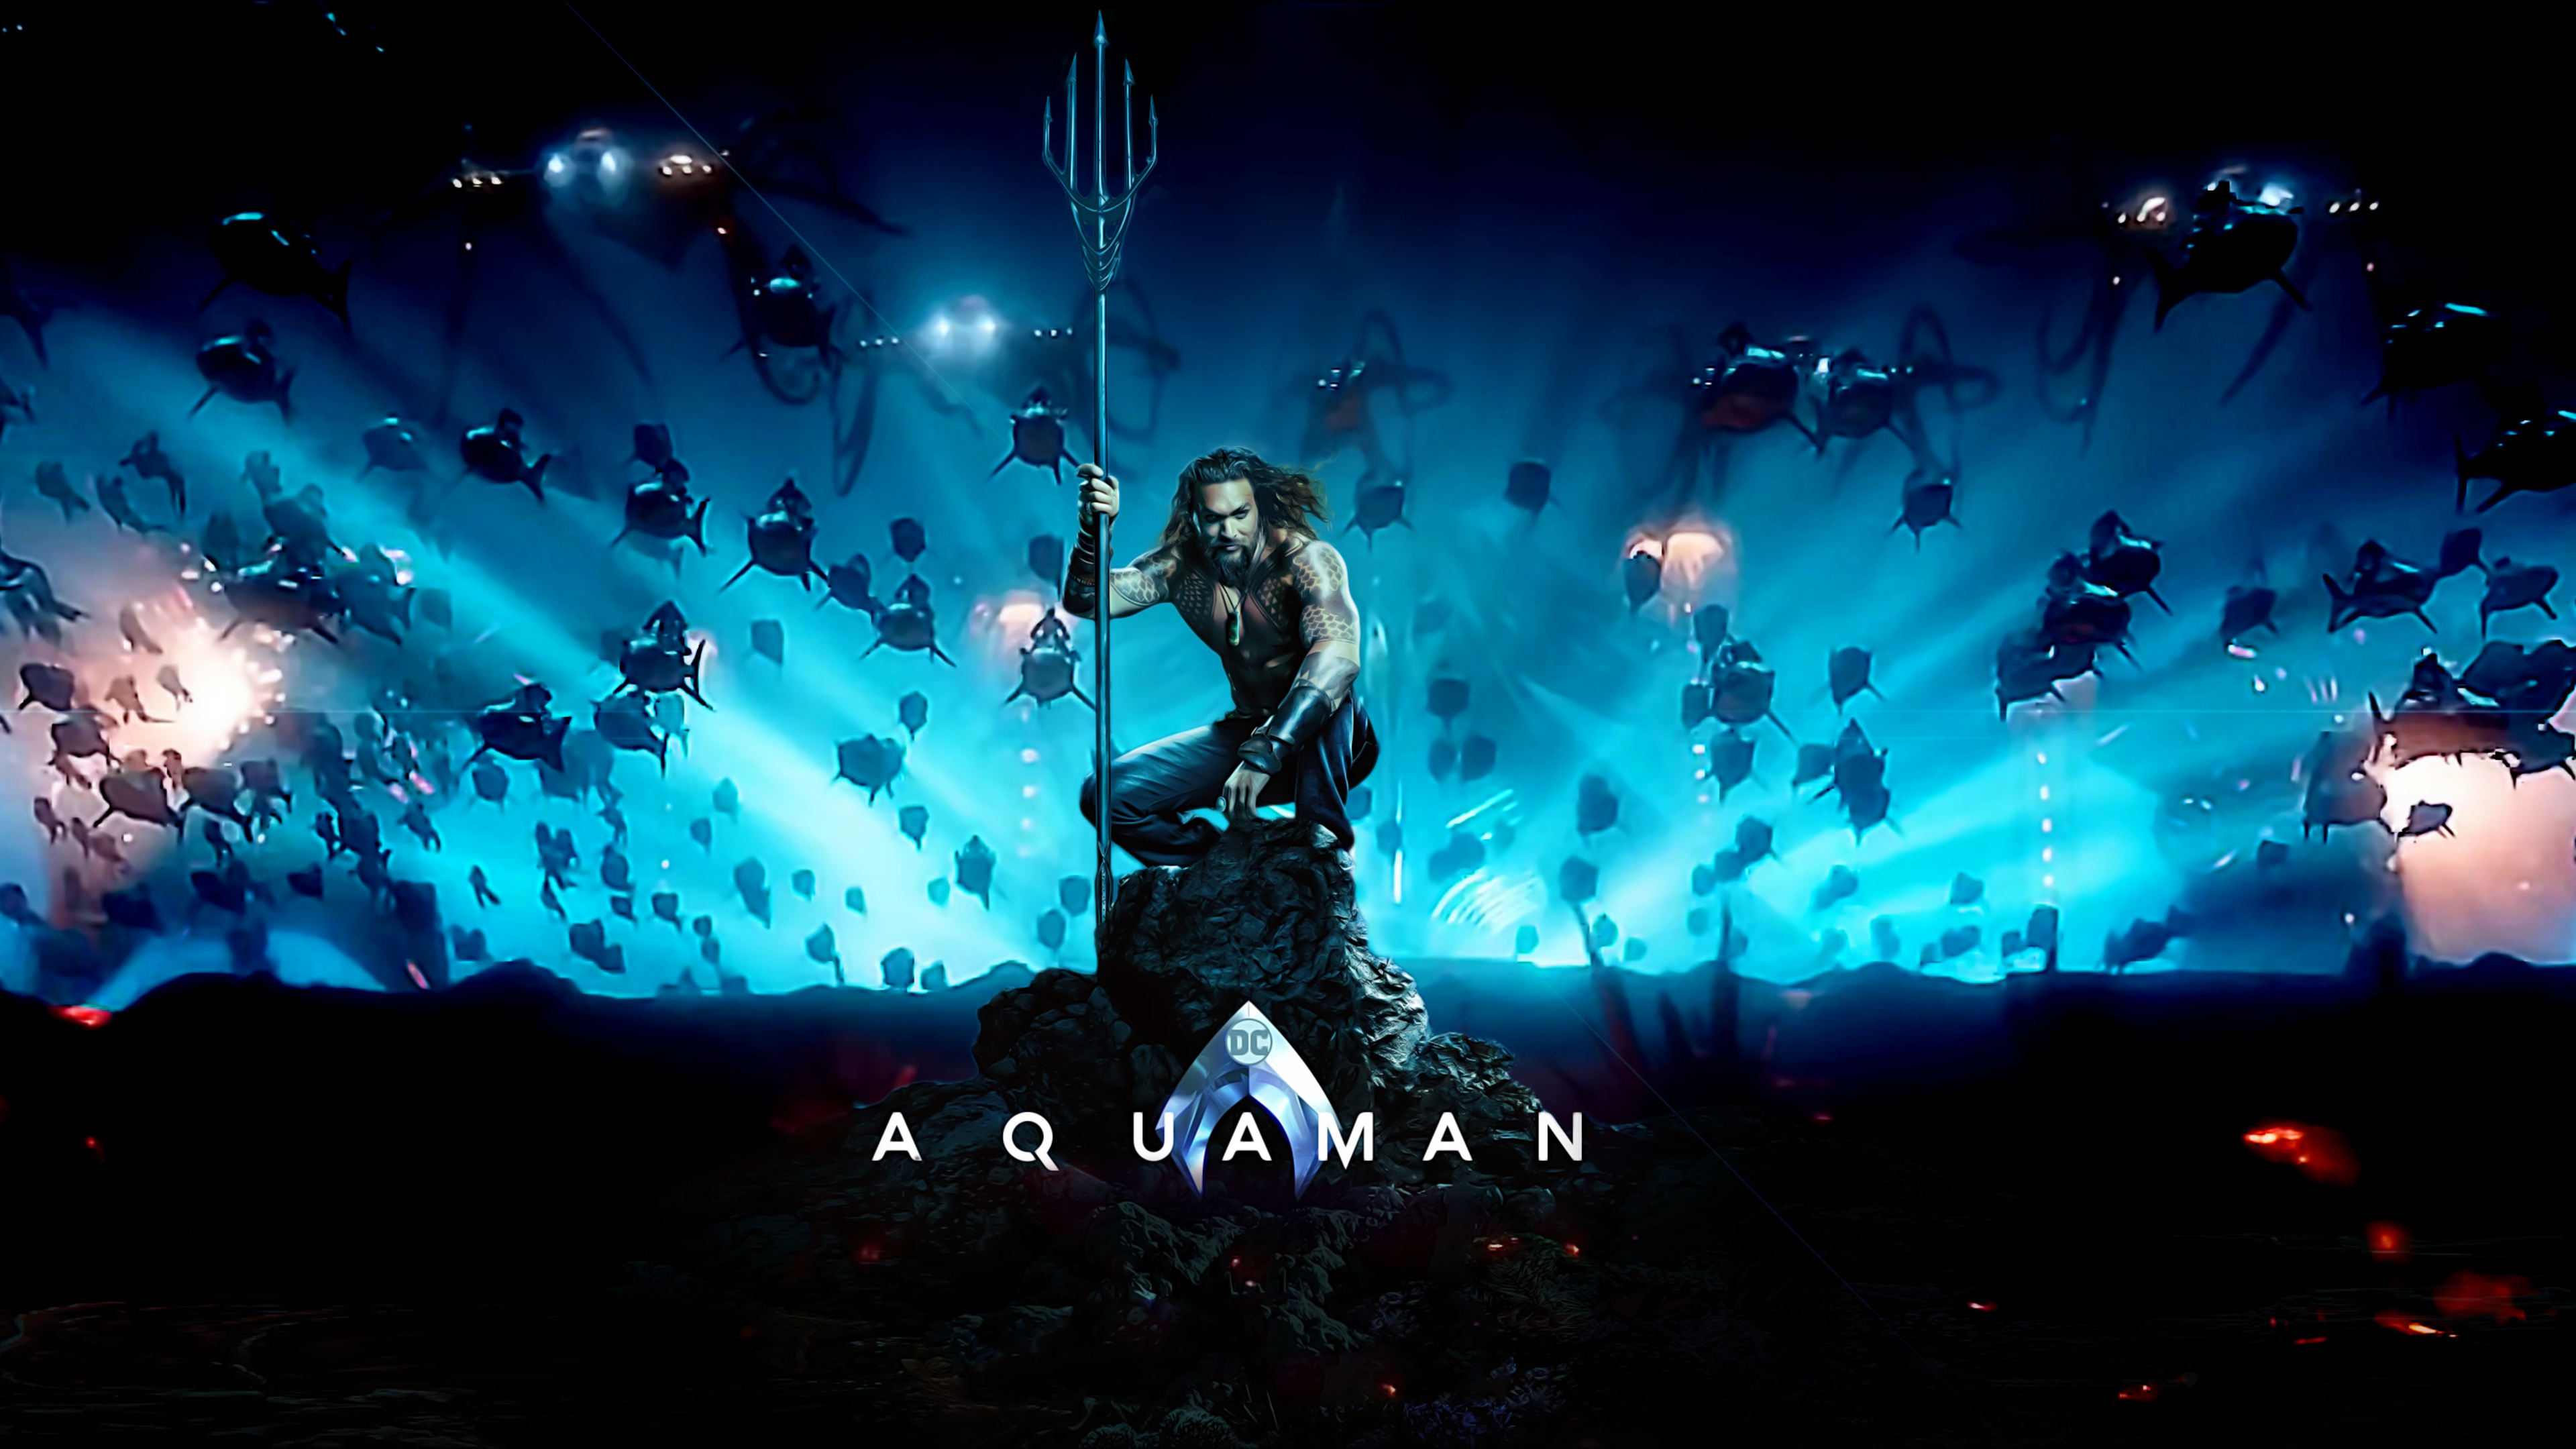 aquaman movie poster 6g 3840x2160 - Aquaman movie poster 2018 - aquaman wallpapers 4k, Aquaman movie poster hd, Aquaman movie poster 4k, Aquaman movie poster 2019